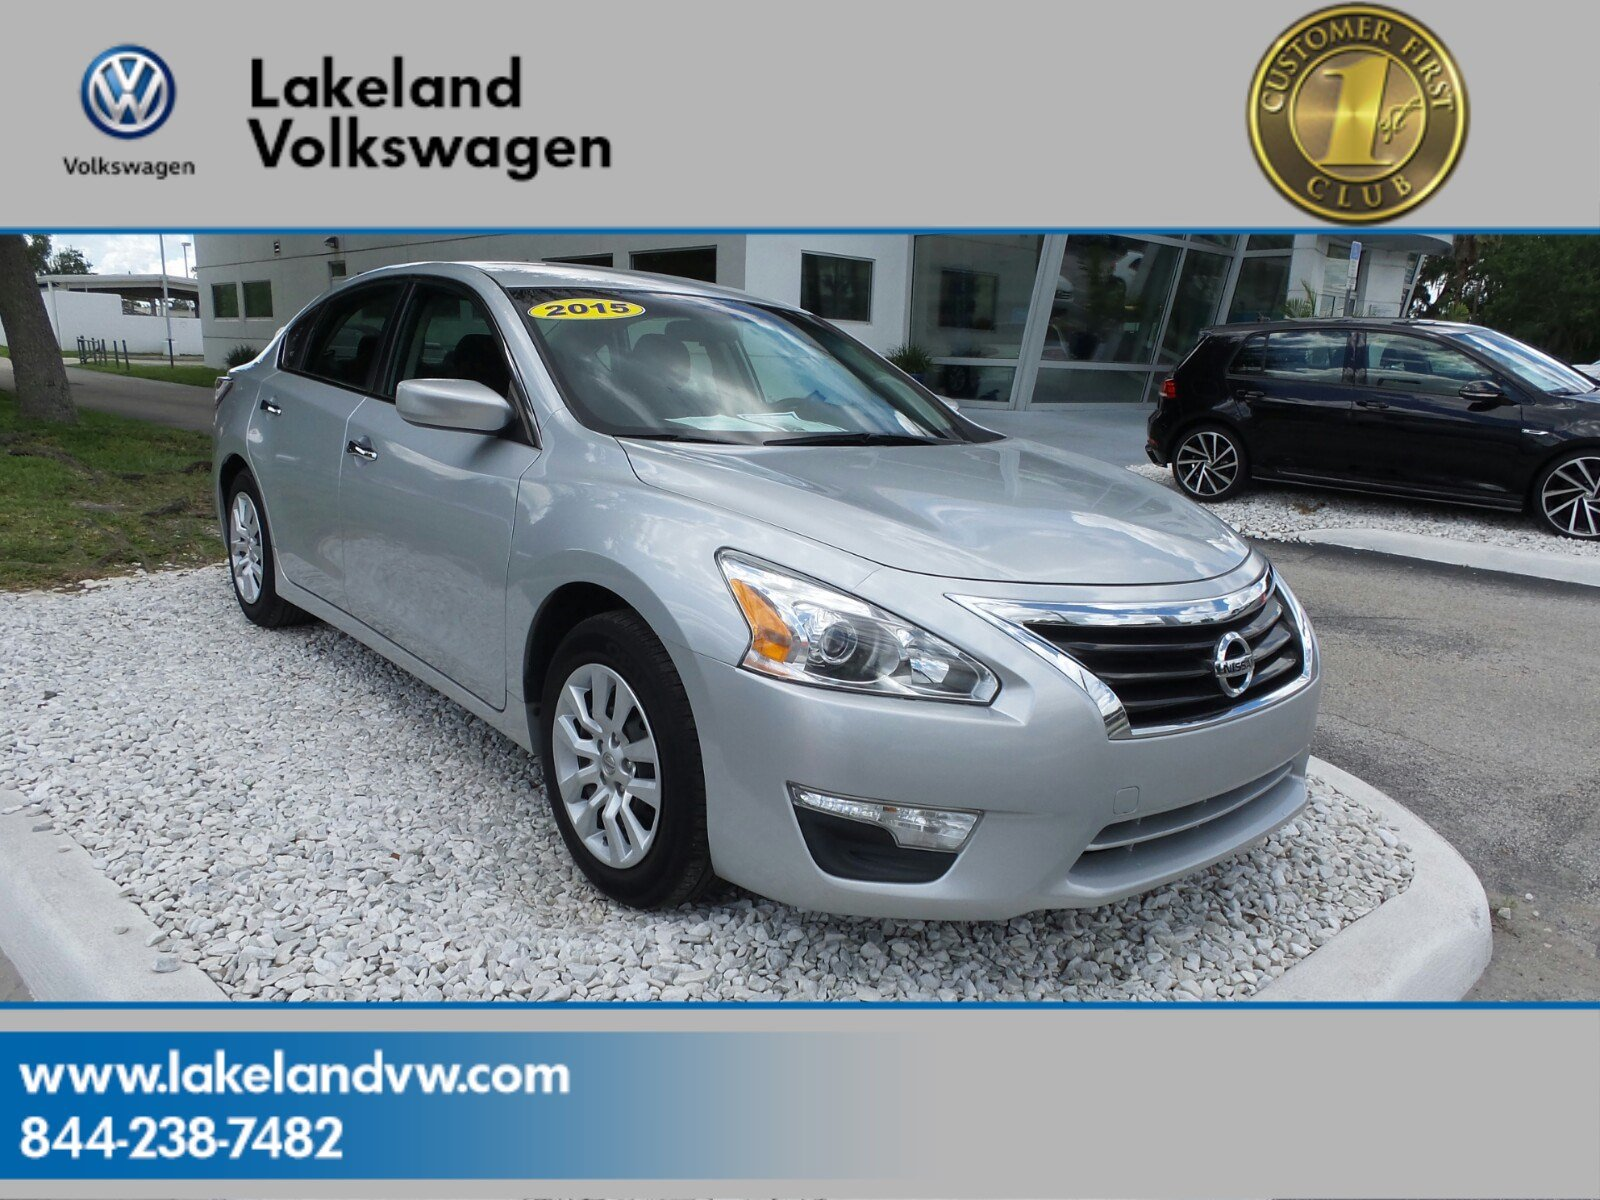 Nissan Altima: Opening windows (if so equipped)